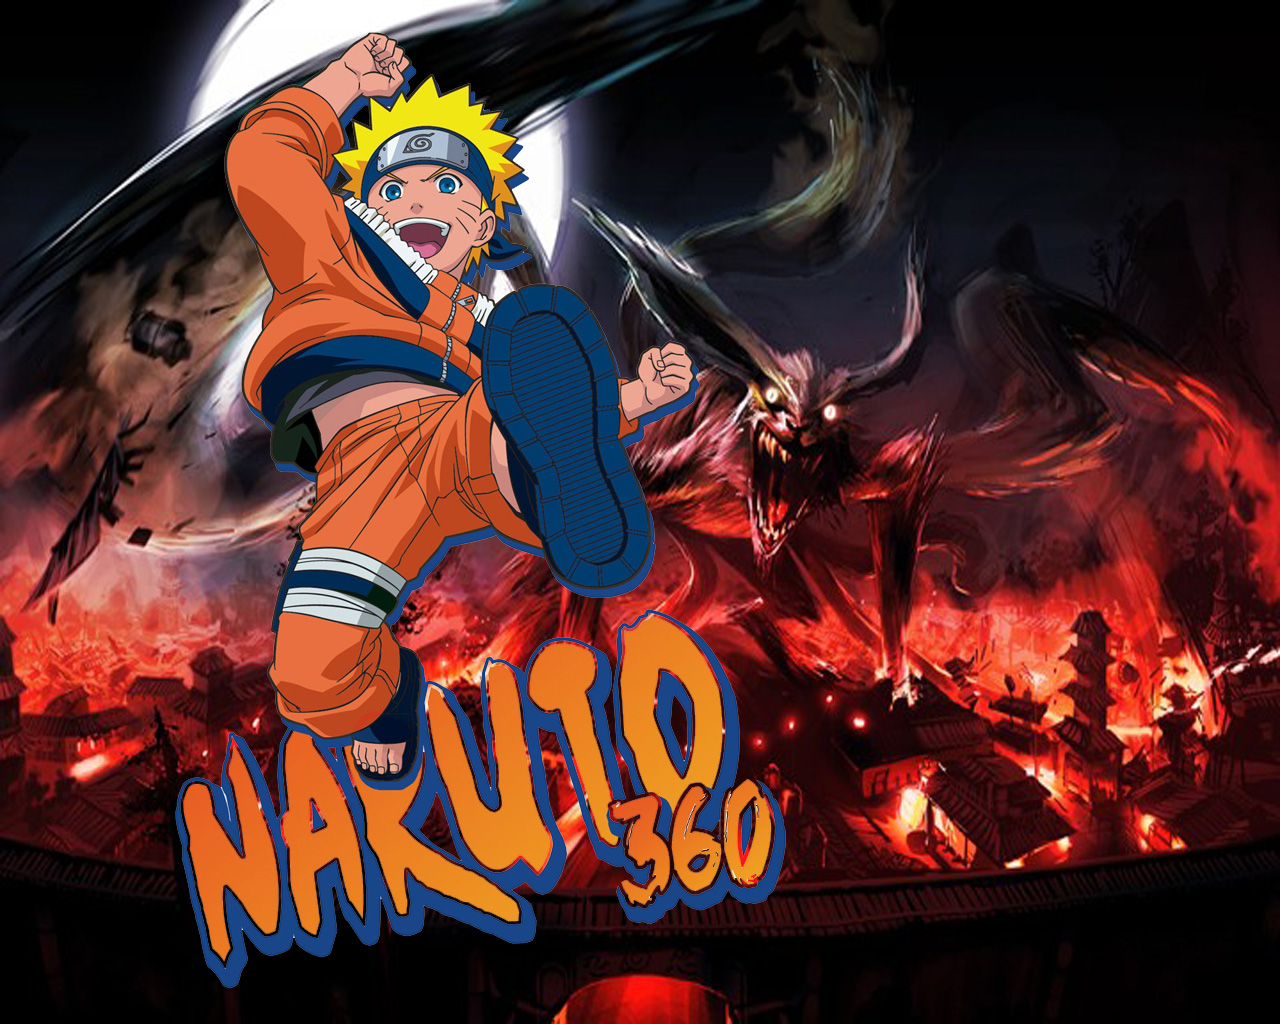 Naruto wallpaper com anime full hd wallpaper for Fond ecran naruto